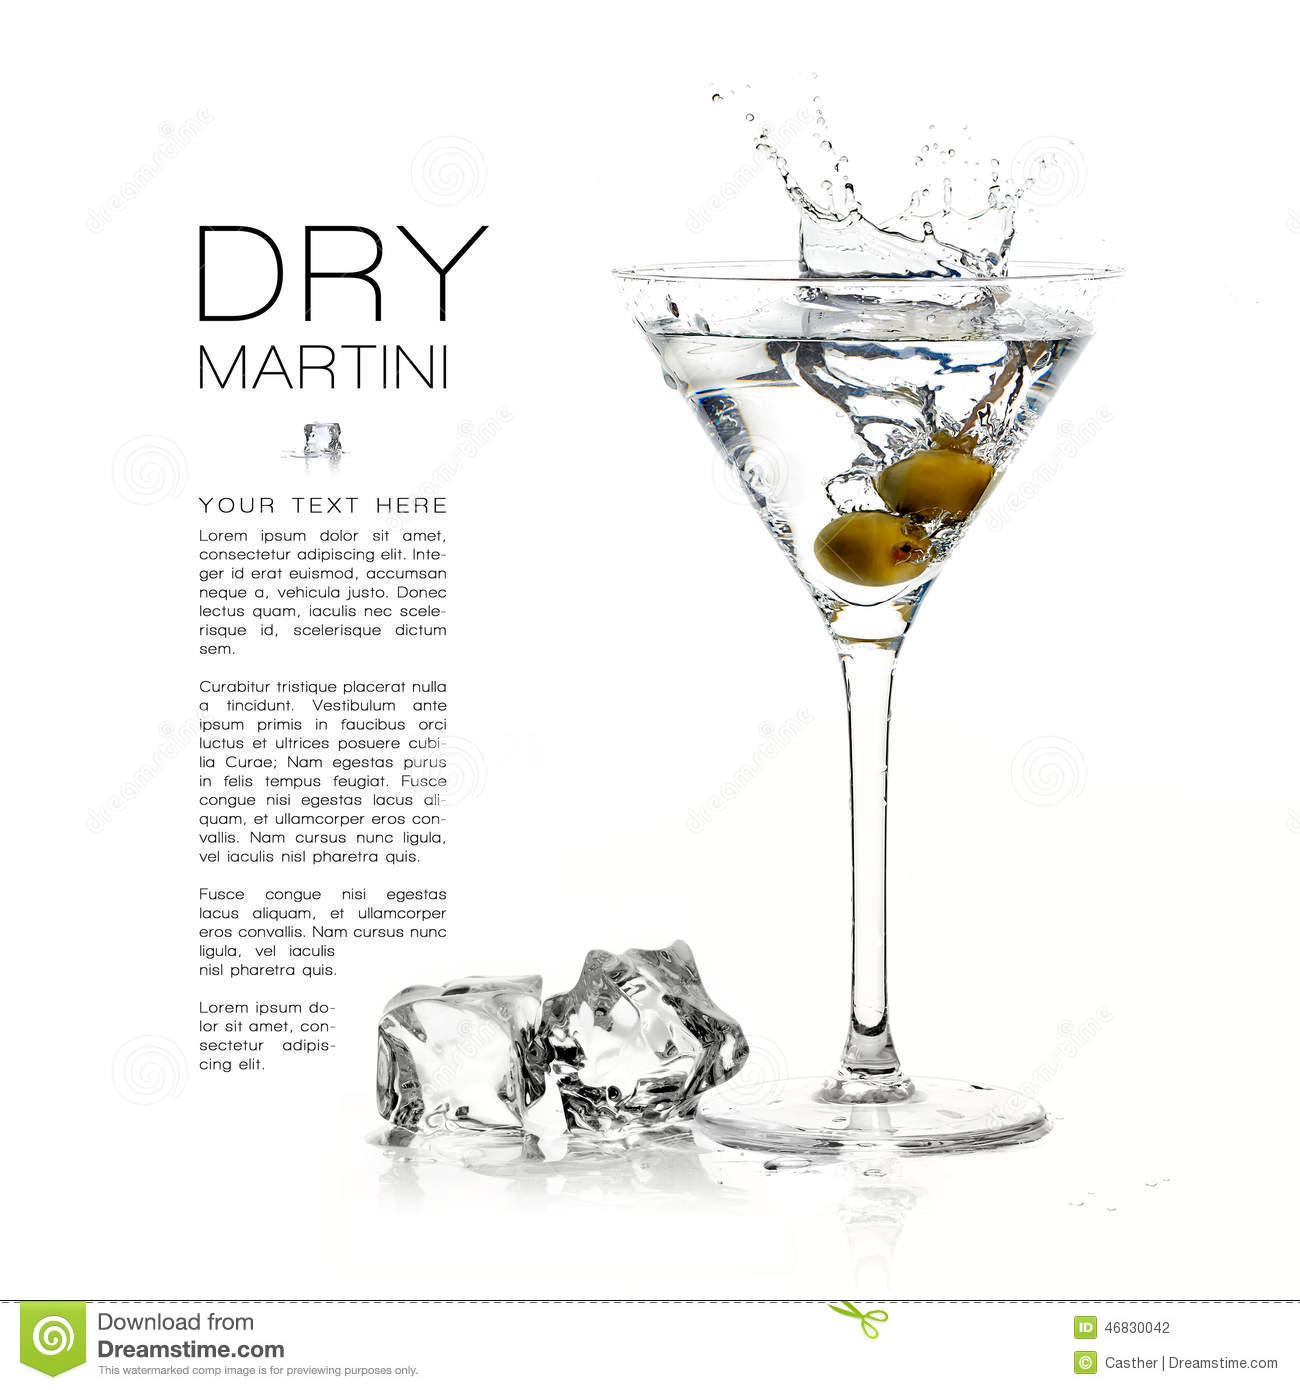 The martini is perhaps the most classic of classic cocktails. From Ernest Hemingway to Winston Churchill to James Bond, the simple drink has been quaffed by famous folks for generations now.